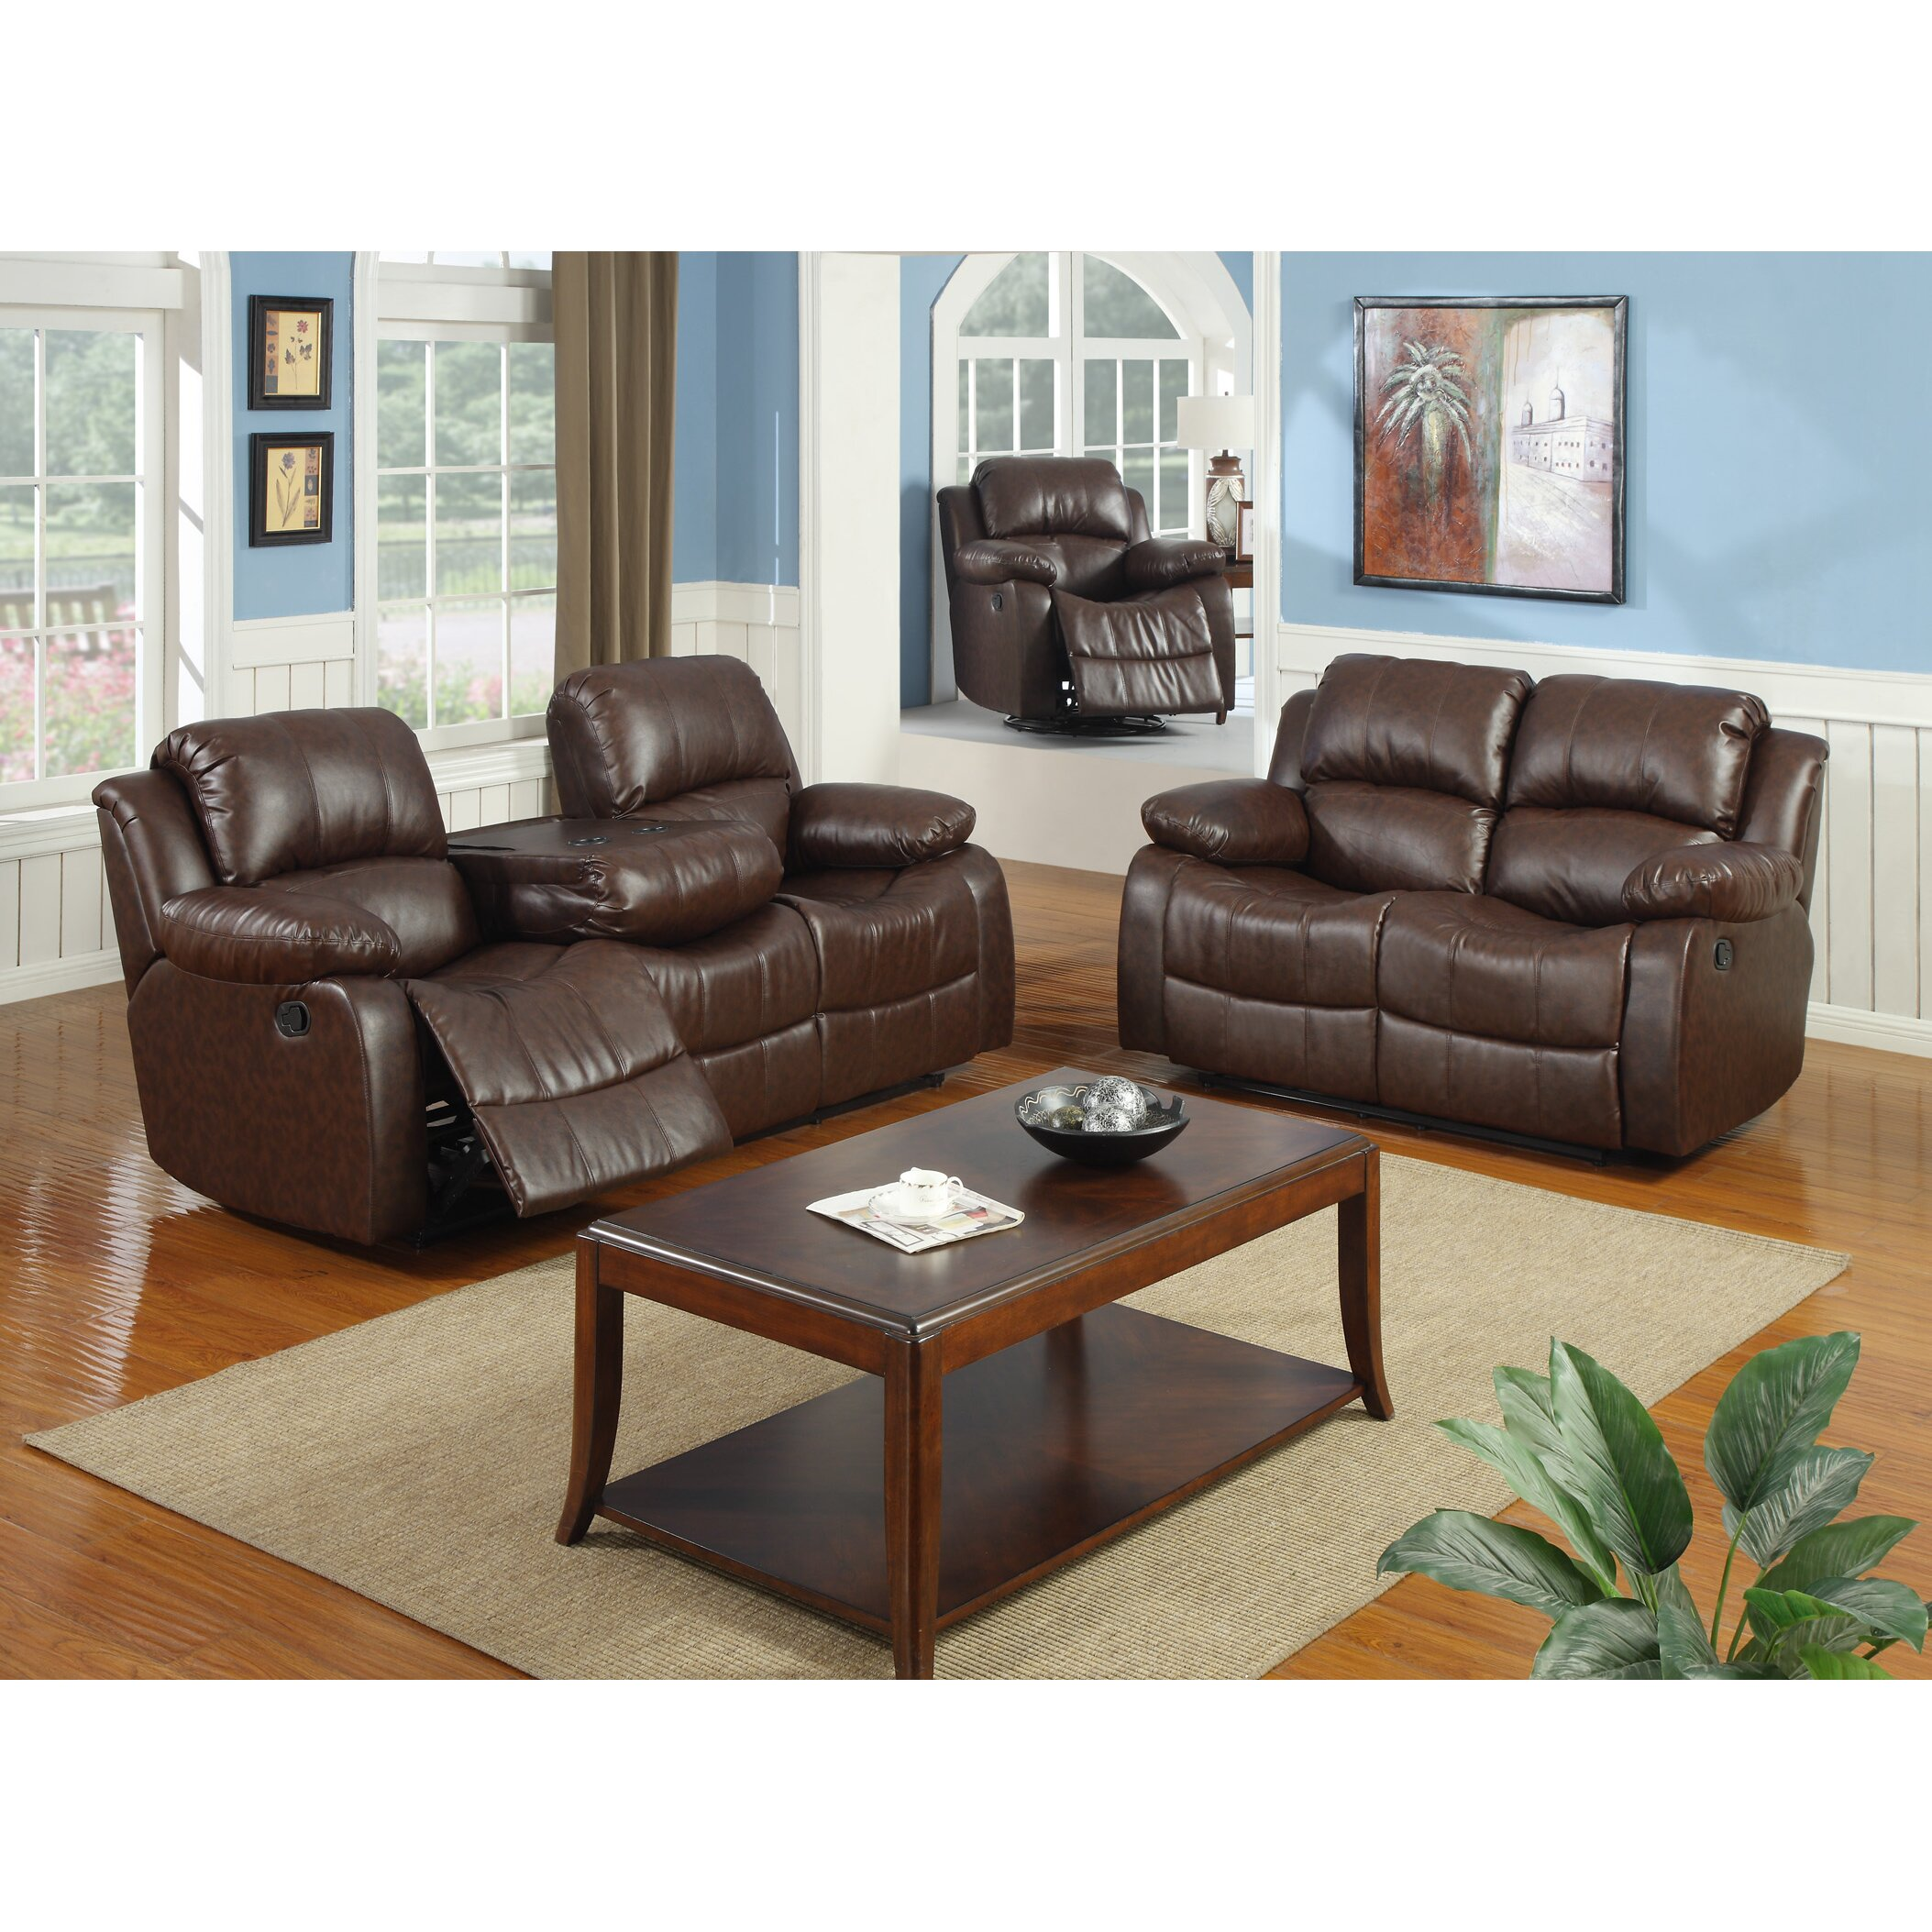 Best quality furniture bonded leather 3 piece recliner for Family room leather furniture